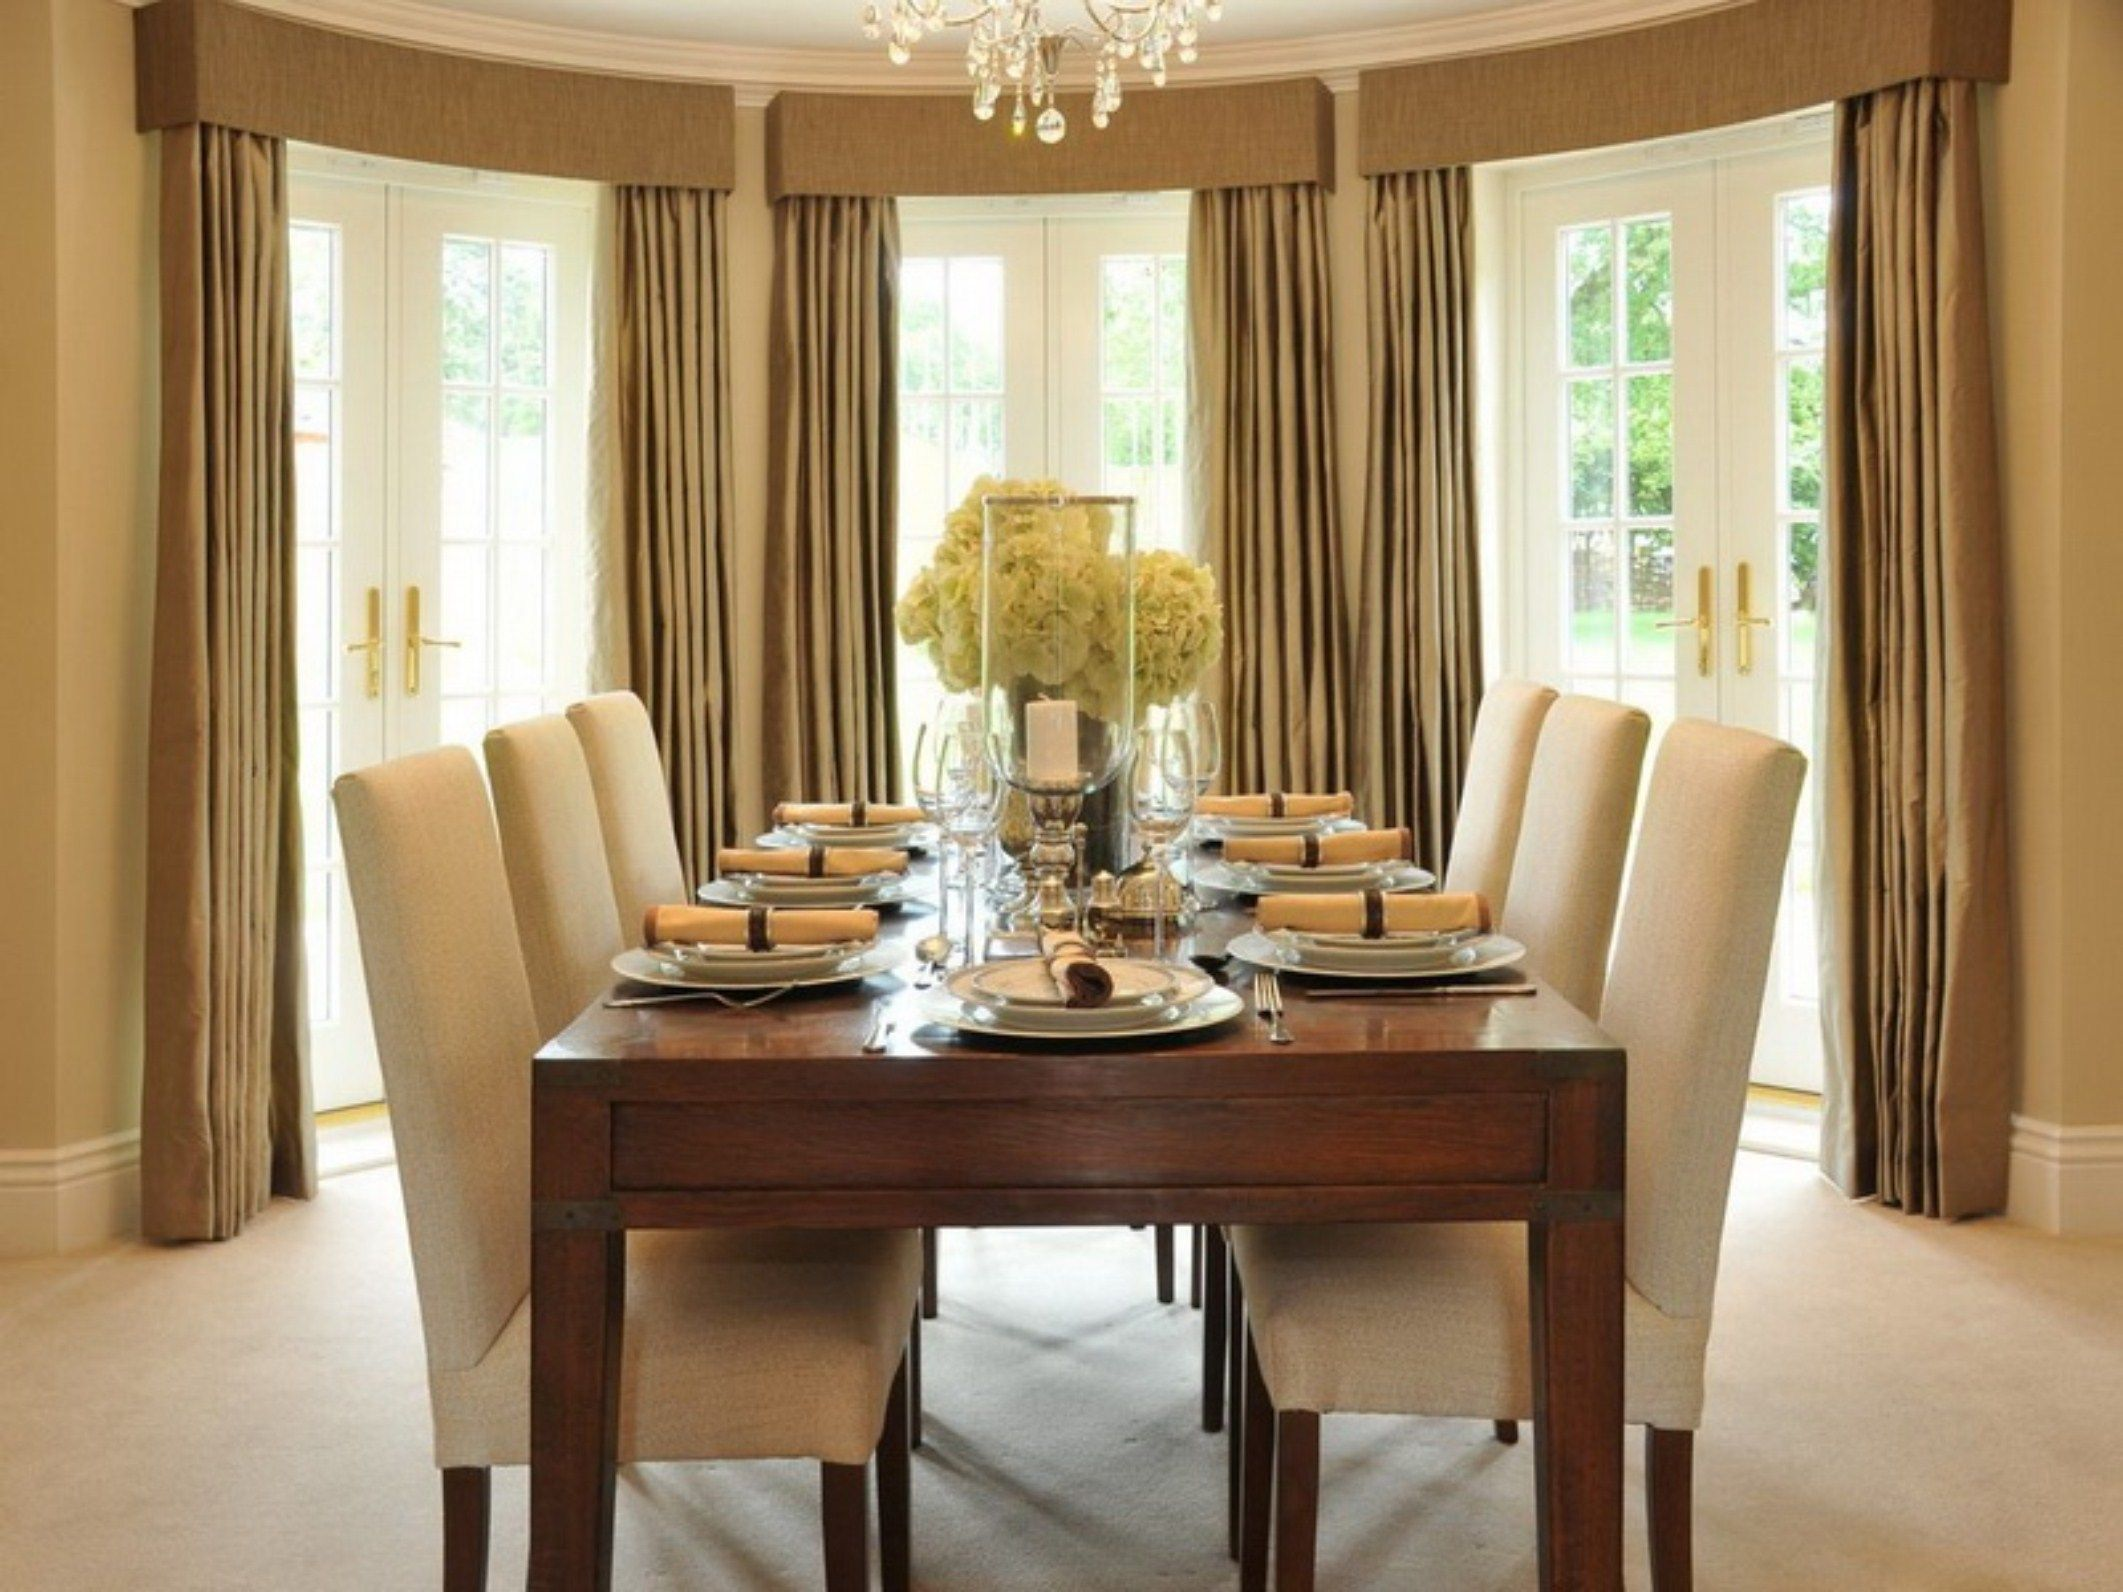 Dining Room Formal Decorating Ideas With Beautiful Flower Arrangement And Brown D Chairs